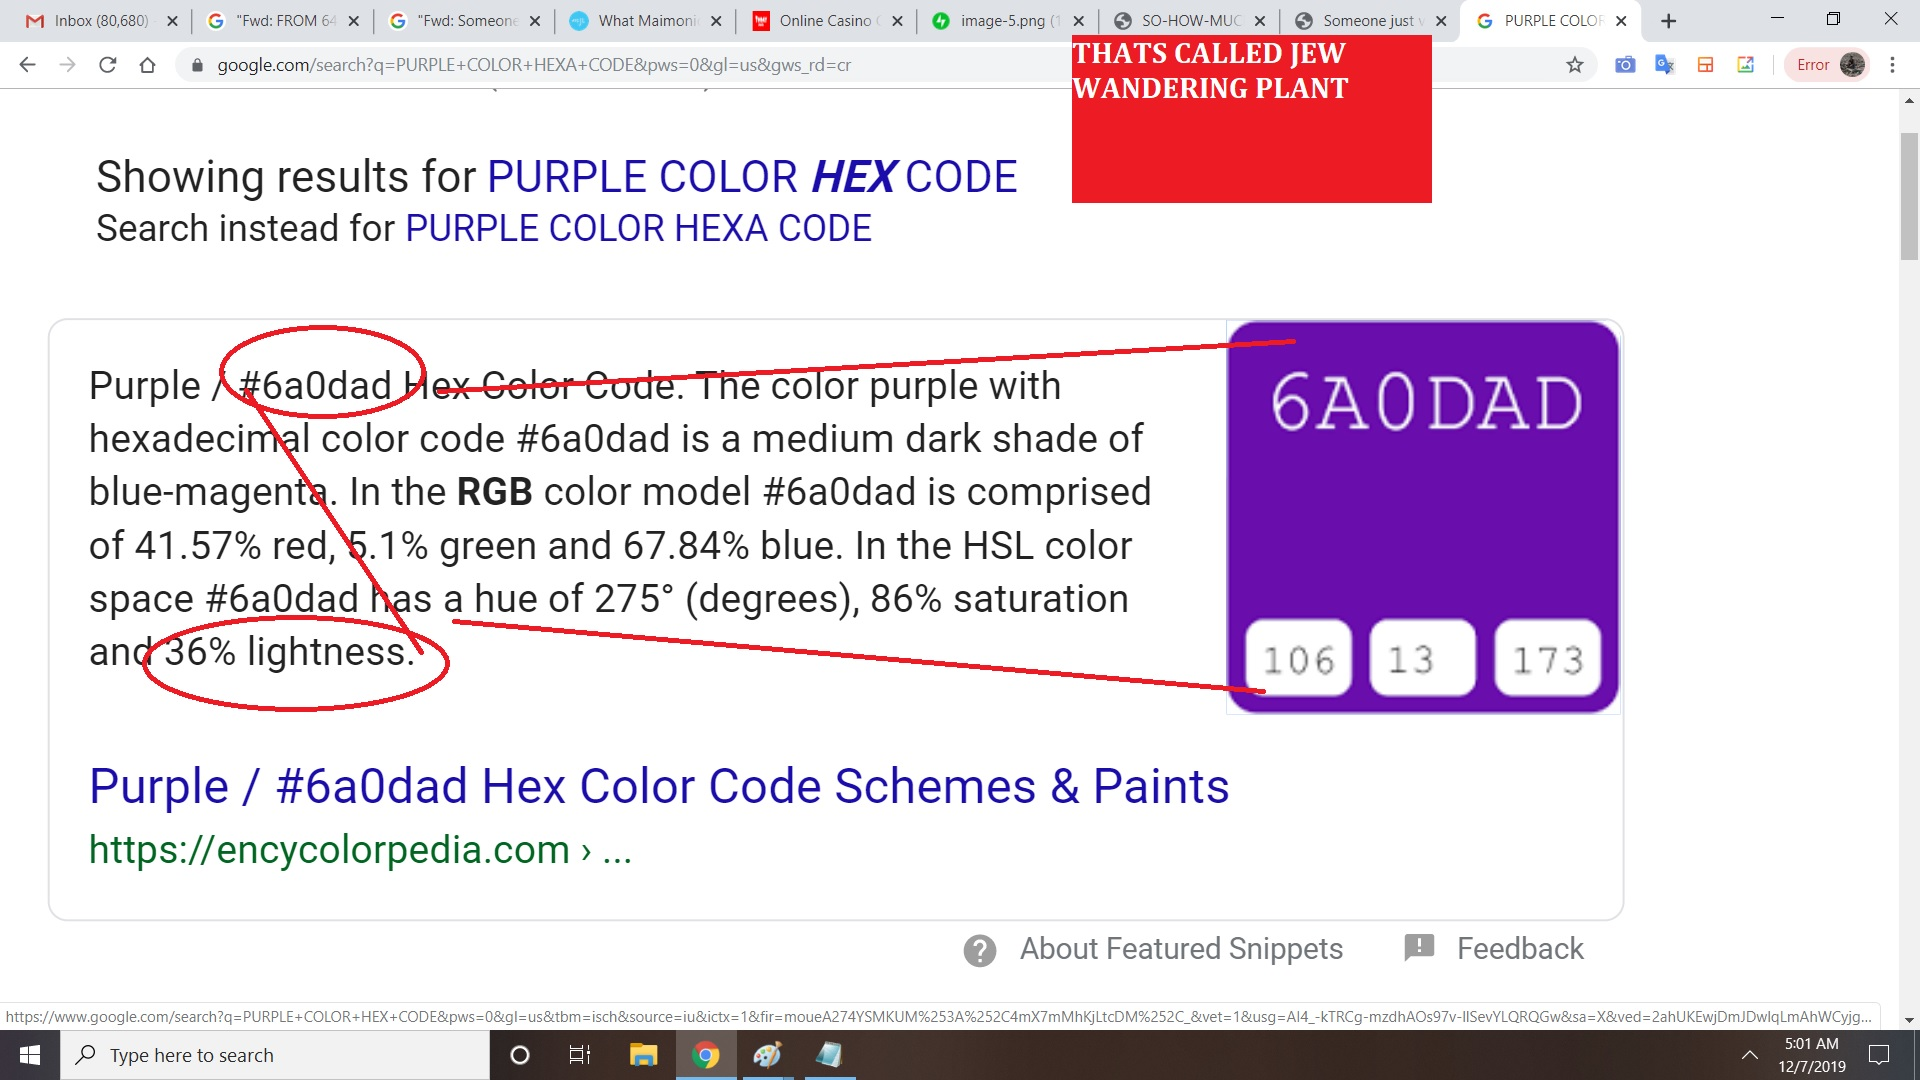 6 A O DAD = THE COLOR OF THE JEW WANDERING PANT AND THE LIGHETNESS DEGREE IS 36 PERCENT